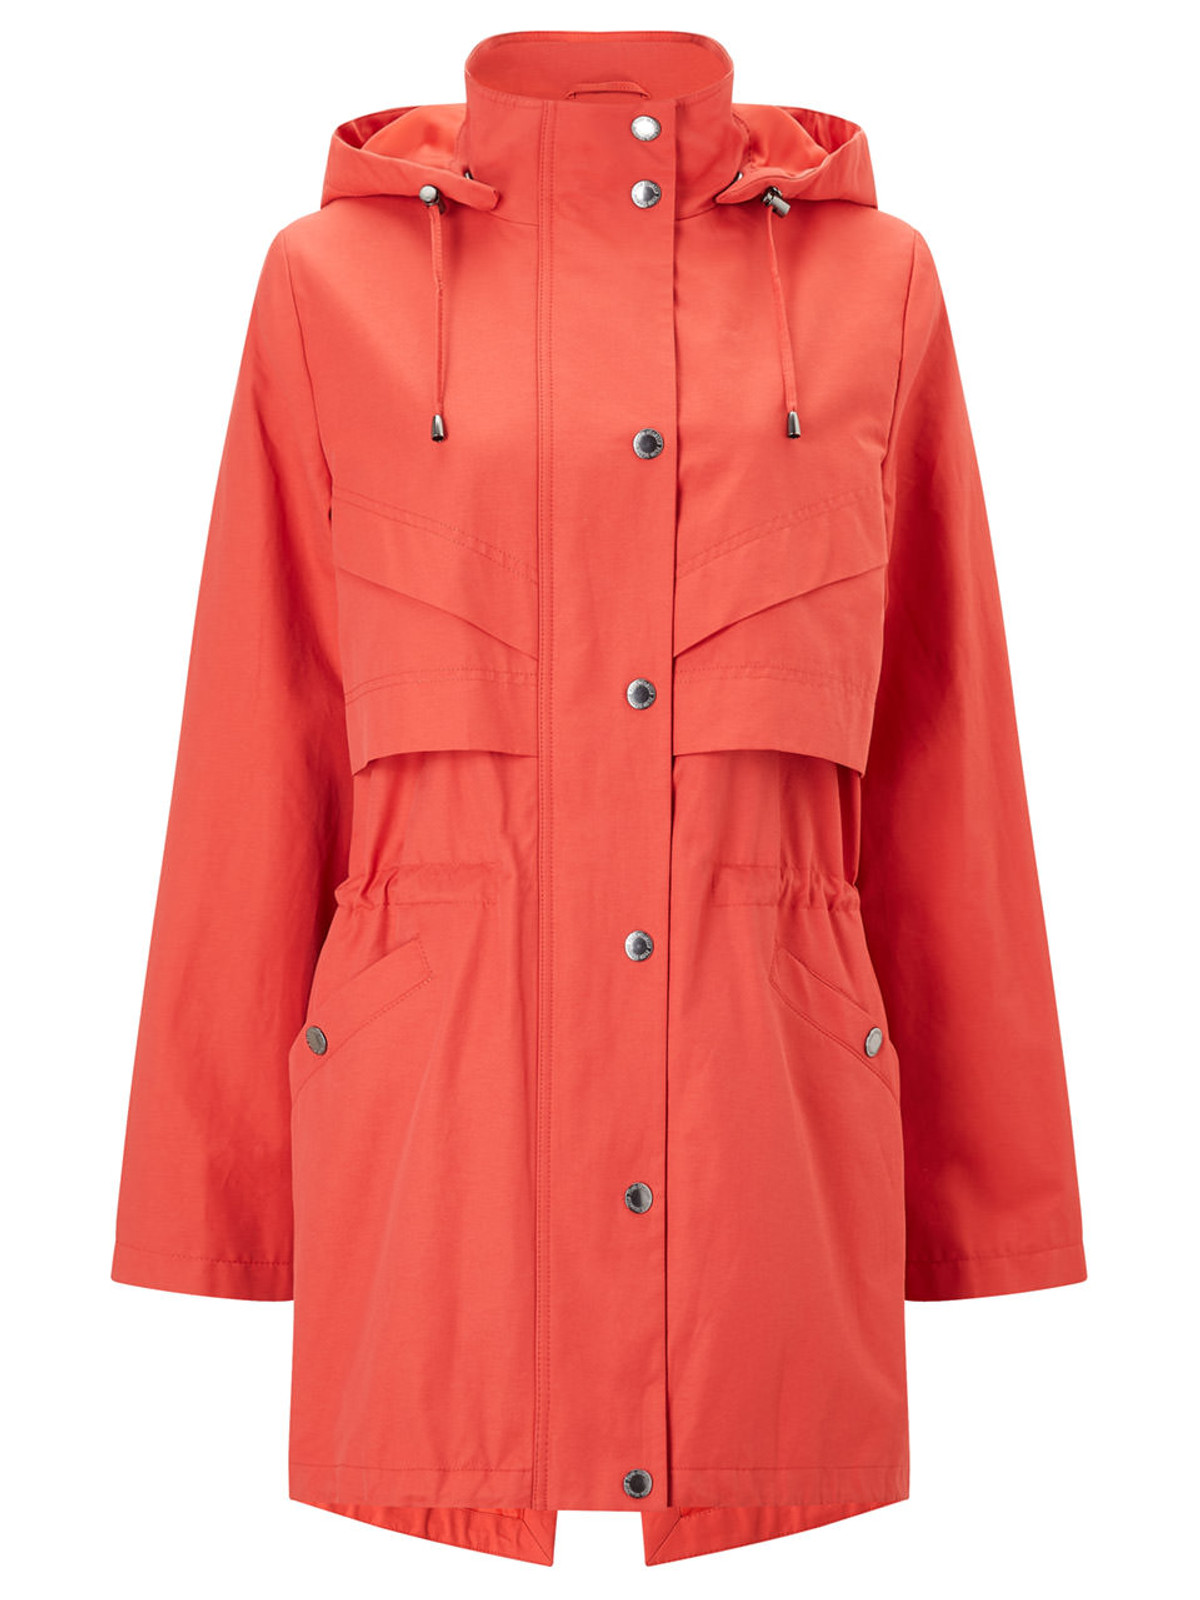 FIRLE – Longerline Jacket with Waist Detail, Red